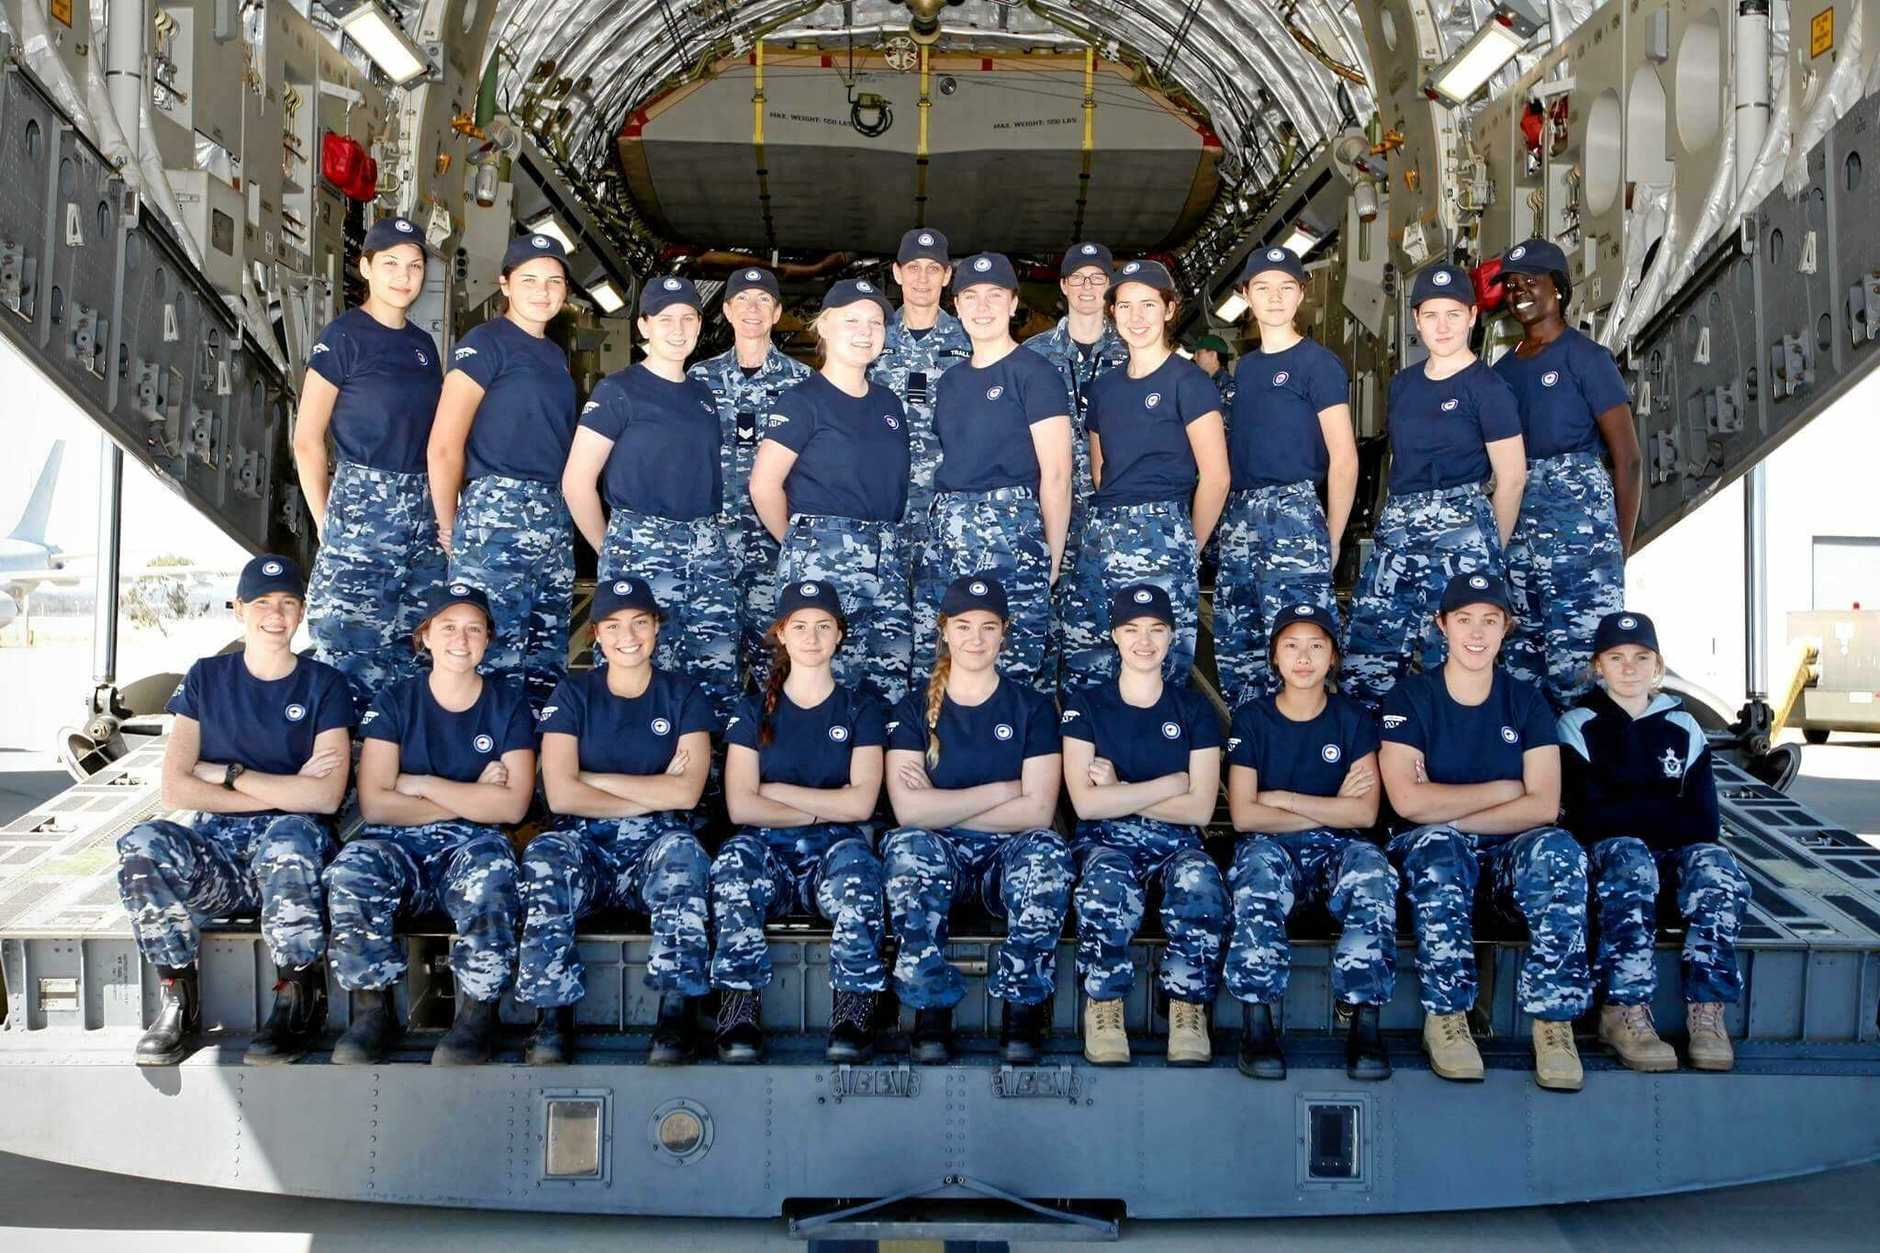 WOMEN IN ACTION: Sophie joined 17 other young women to get a taste of life with the air force.